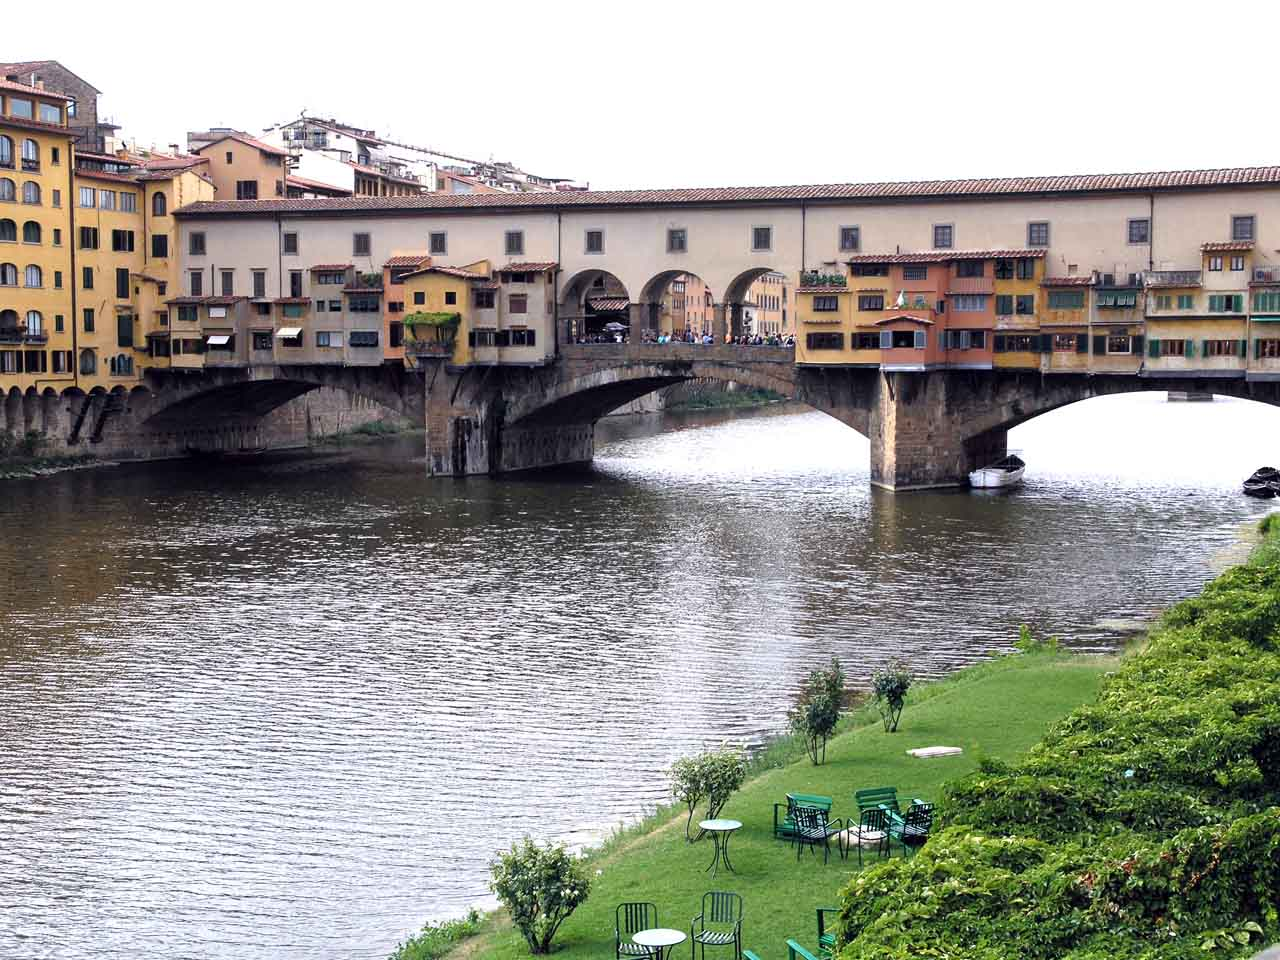 Ponte Vecchio (Old Bridge) is the oldest bridge in Florence crossing the river Arno.